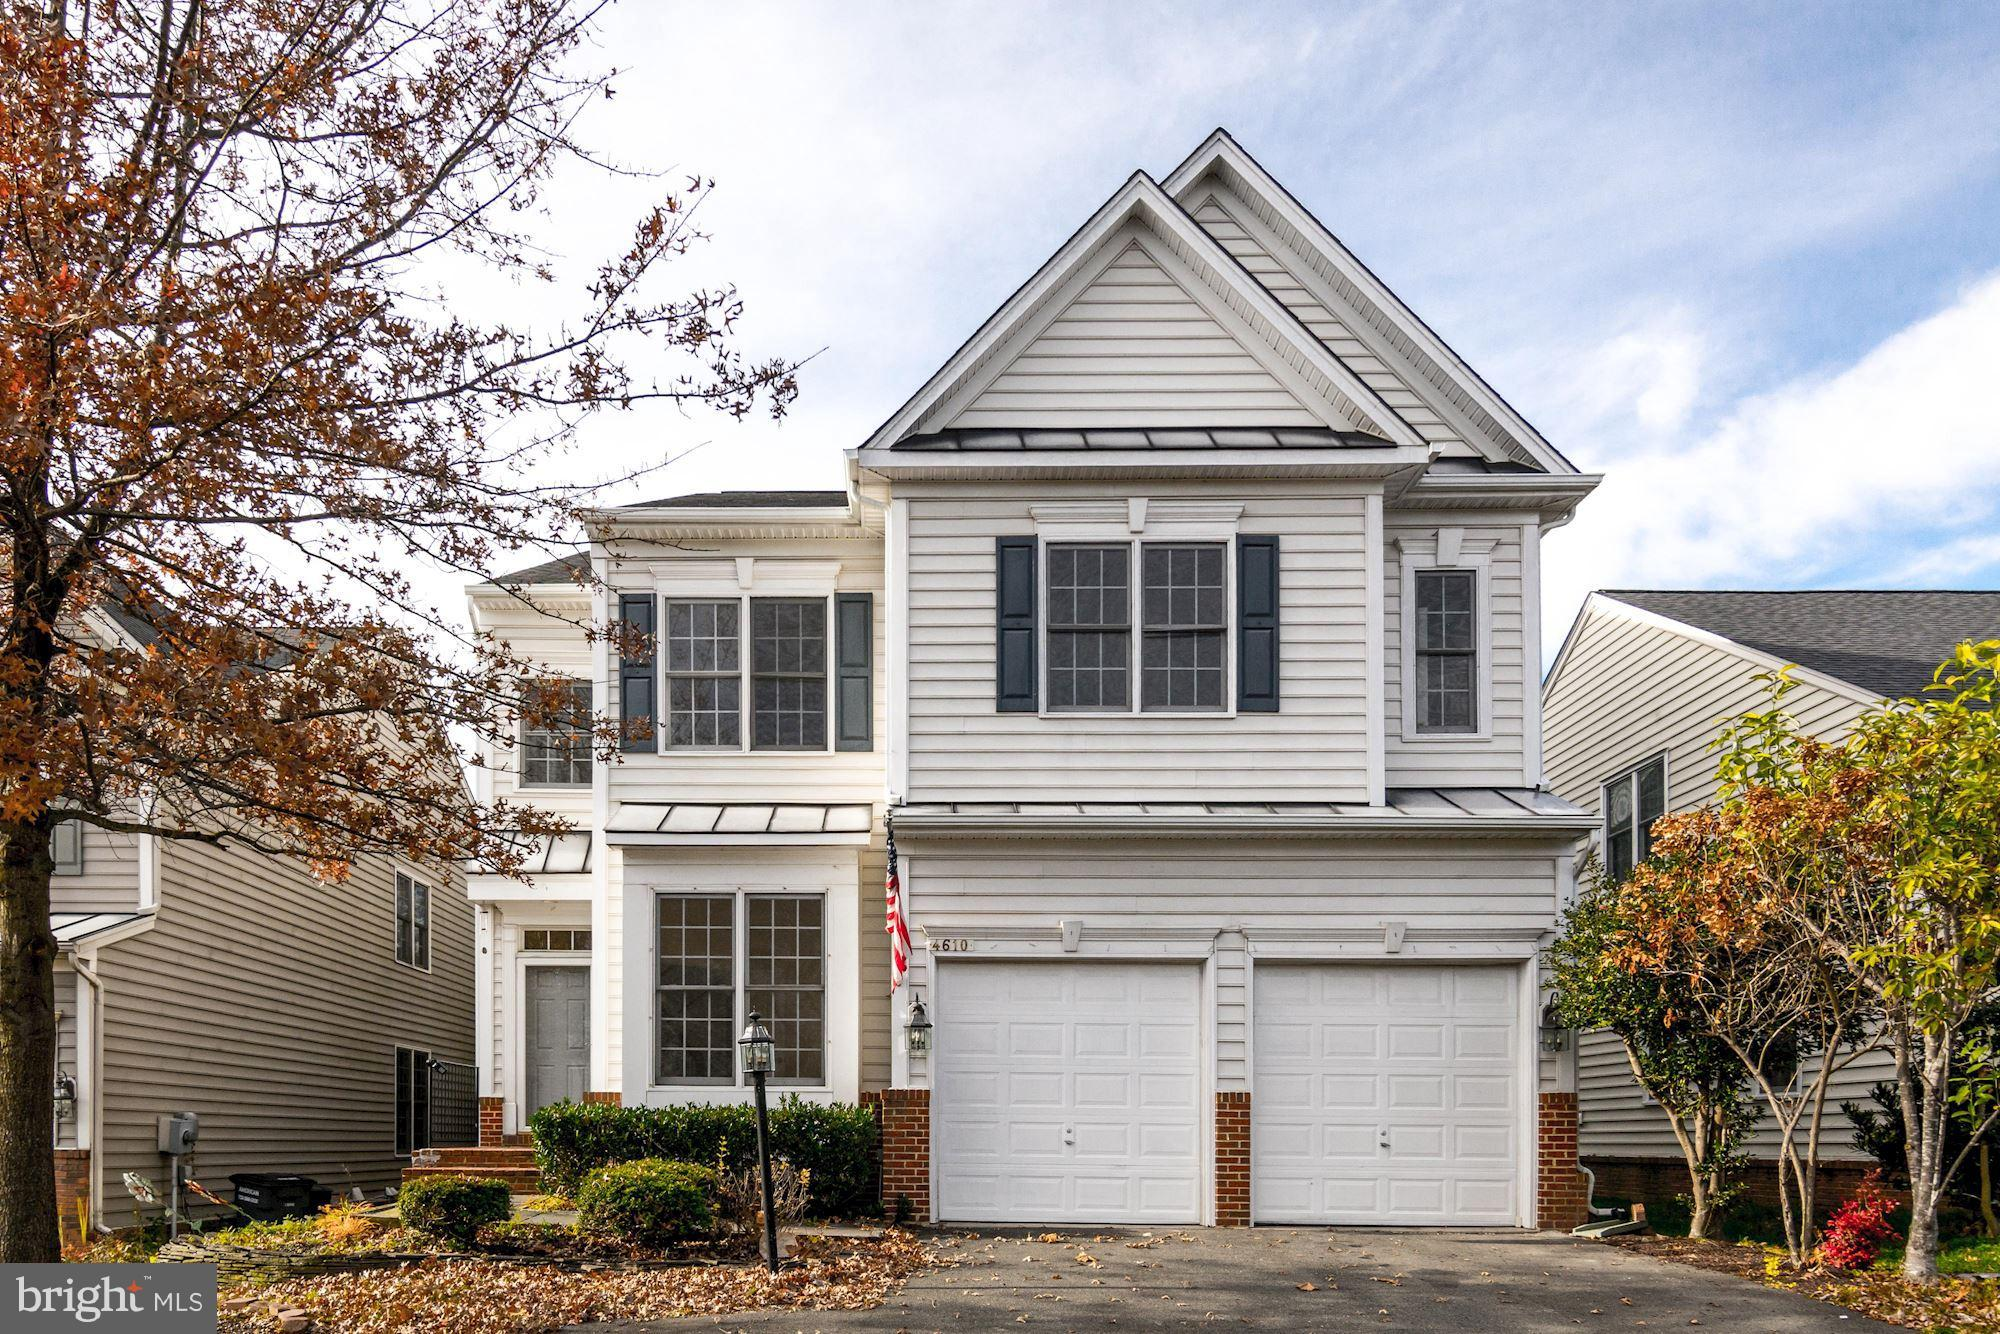 Very large (4650+sq ft) clean 4-5 BR, 3.5 BA colonial home w/2 car garage.  Great location near shopping etc. Walkup basement, with full wet bar w/dishwasher & frig. Fenced in back yard. More pictures coming soon!